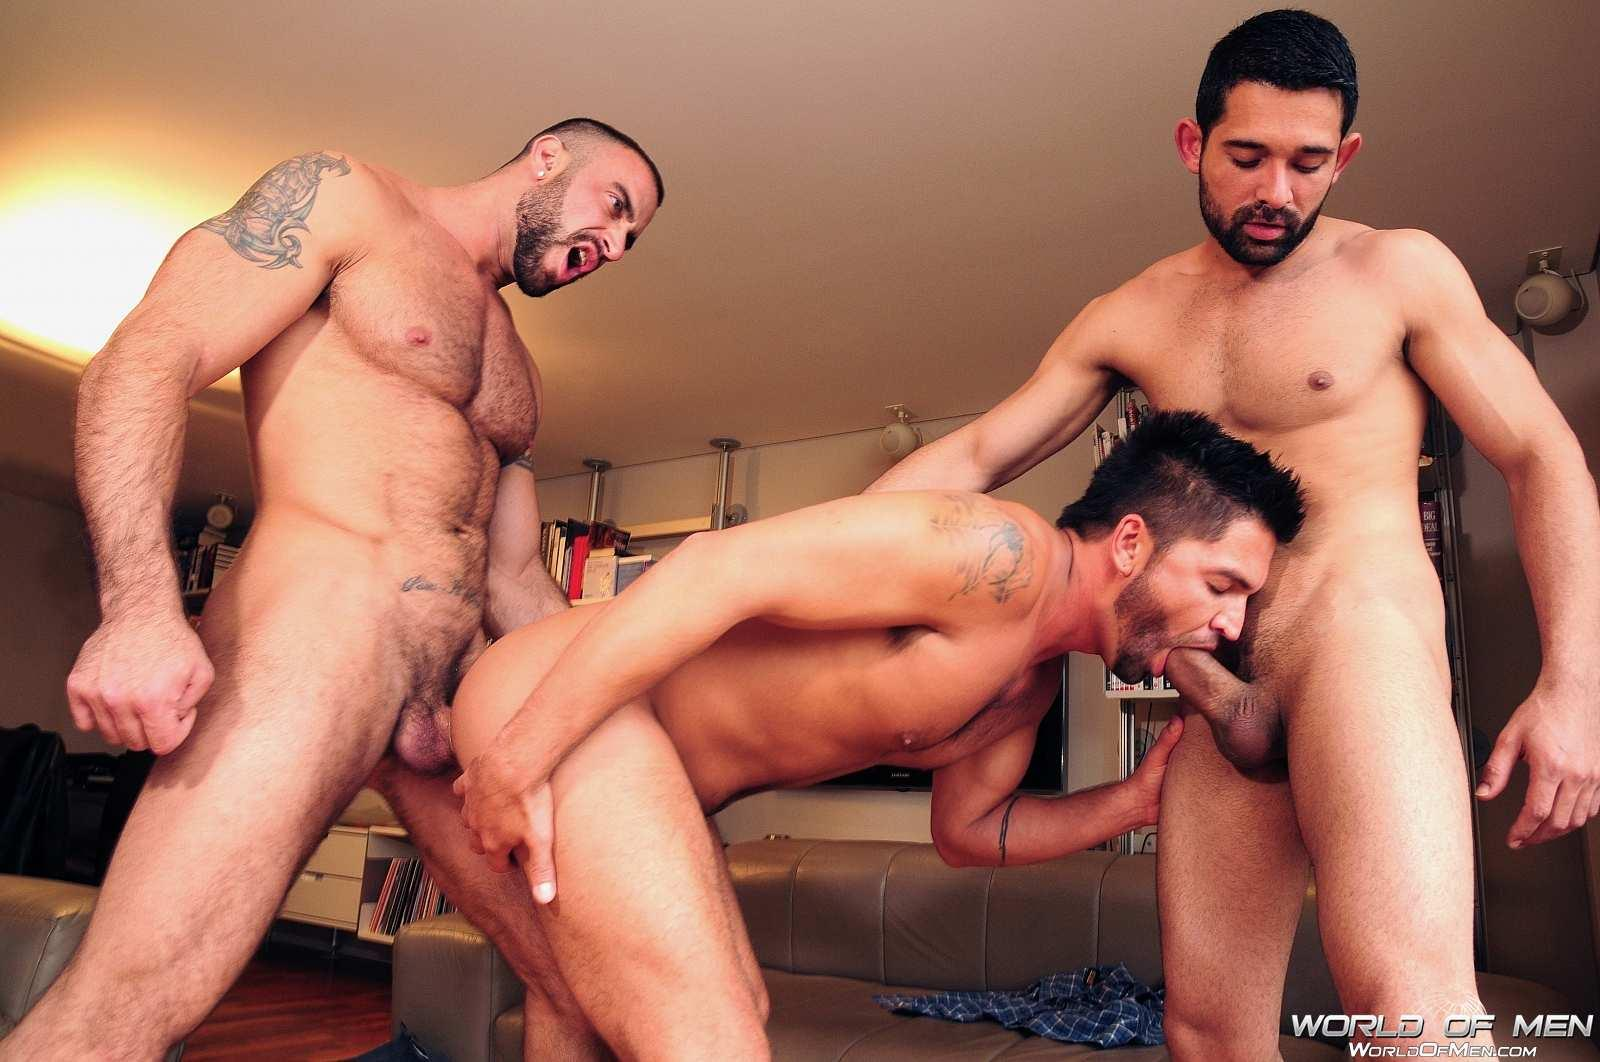 World-Of-Men-Spencer-Reed-and-Dominic-Pacifico-and-Billy-Baval-Taking-Two-Huge-Cocks-Up-The-Ass-Tagteam-Amateur-Gay-Porn-07 Dominic Pacifico Getting Tag Teamed By Two Huge Cocks